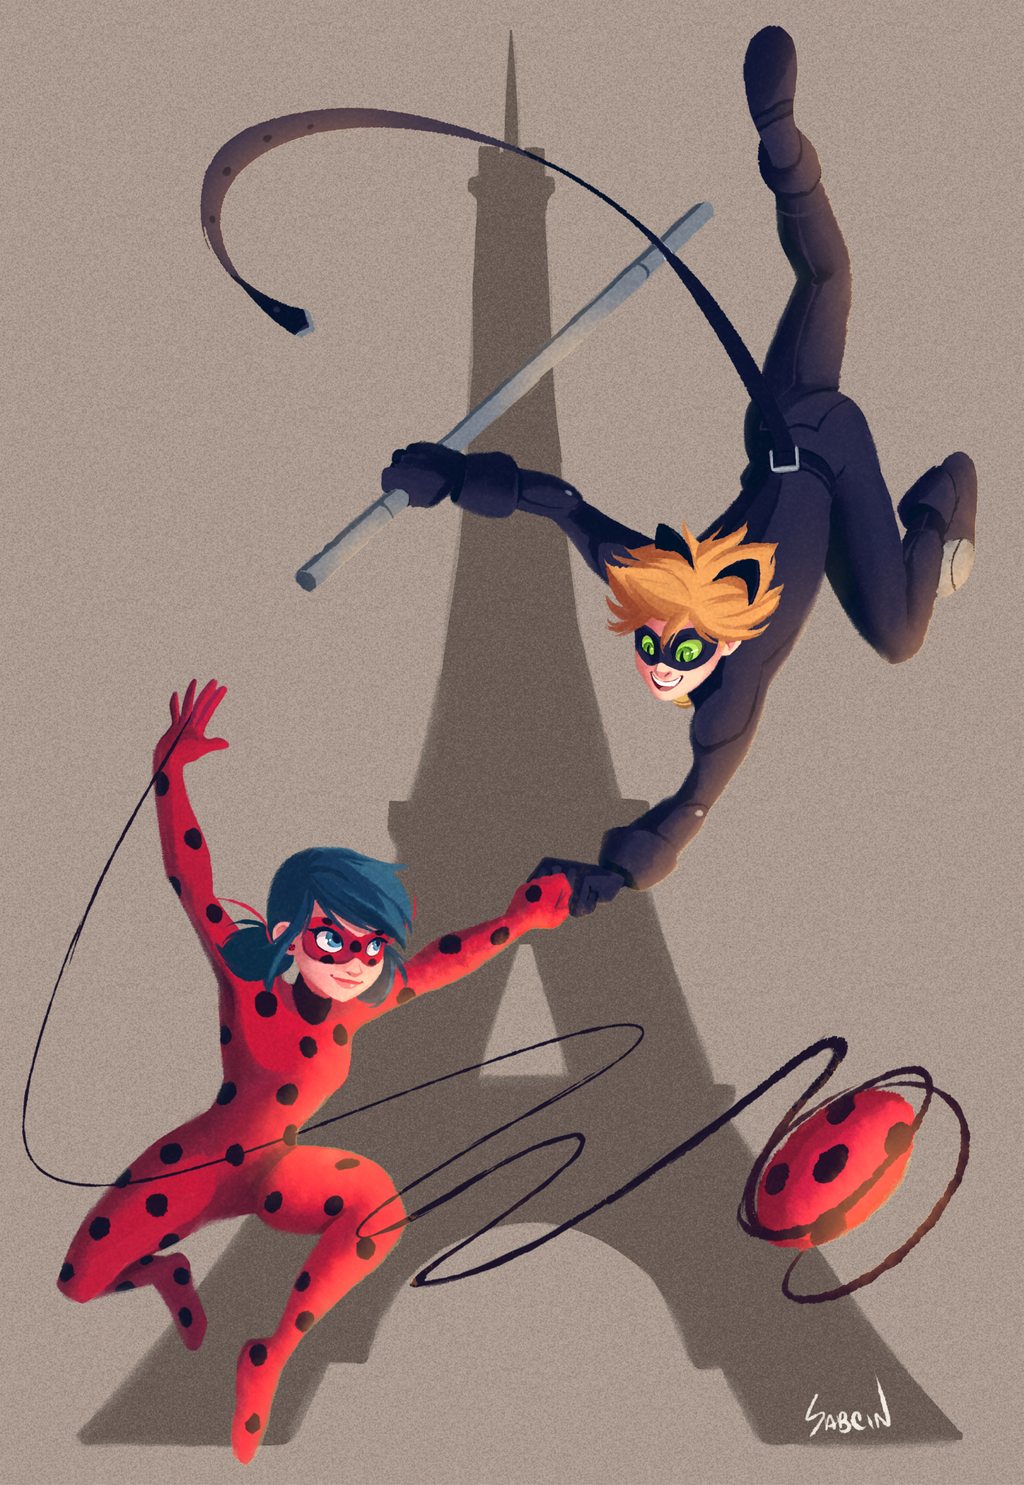 High Resolution Wallpaper | Miraculous: Tales Of Ladybug & Cat Noir 1024x1485 px